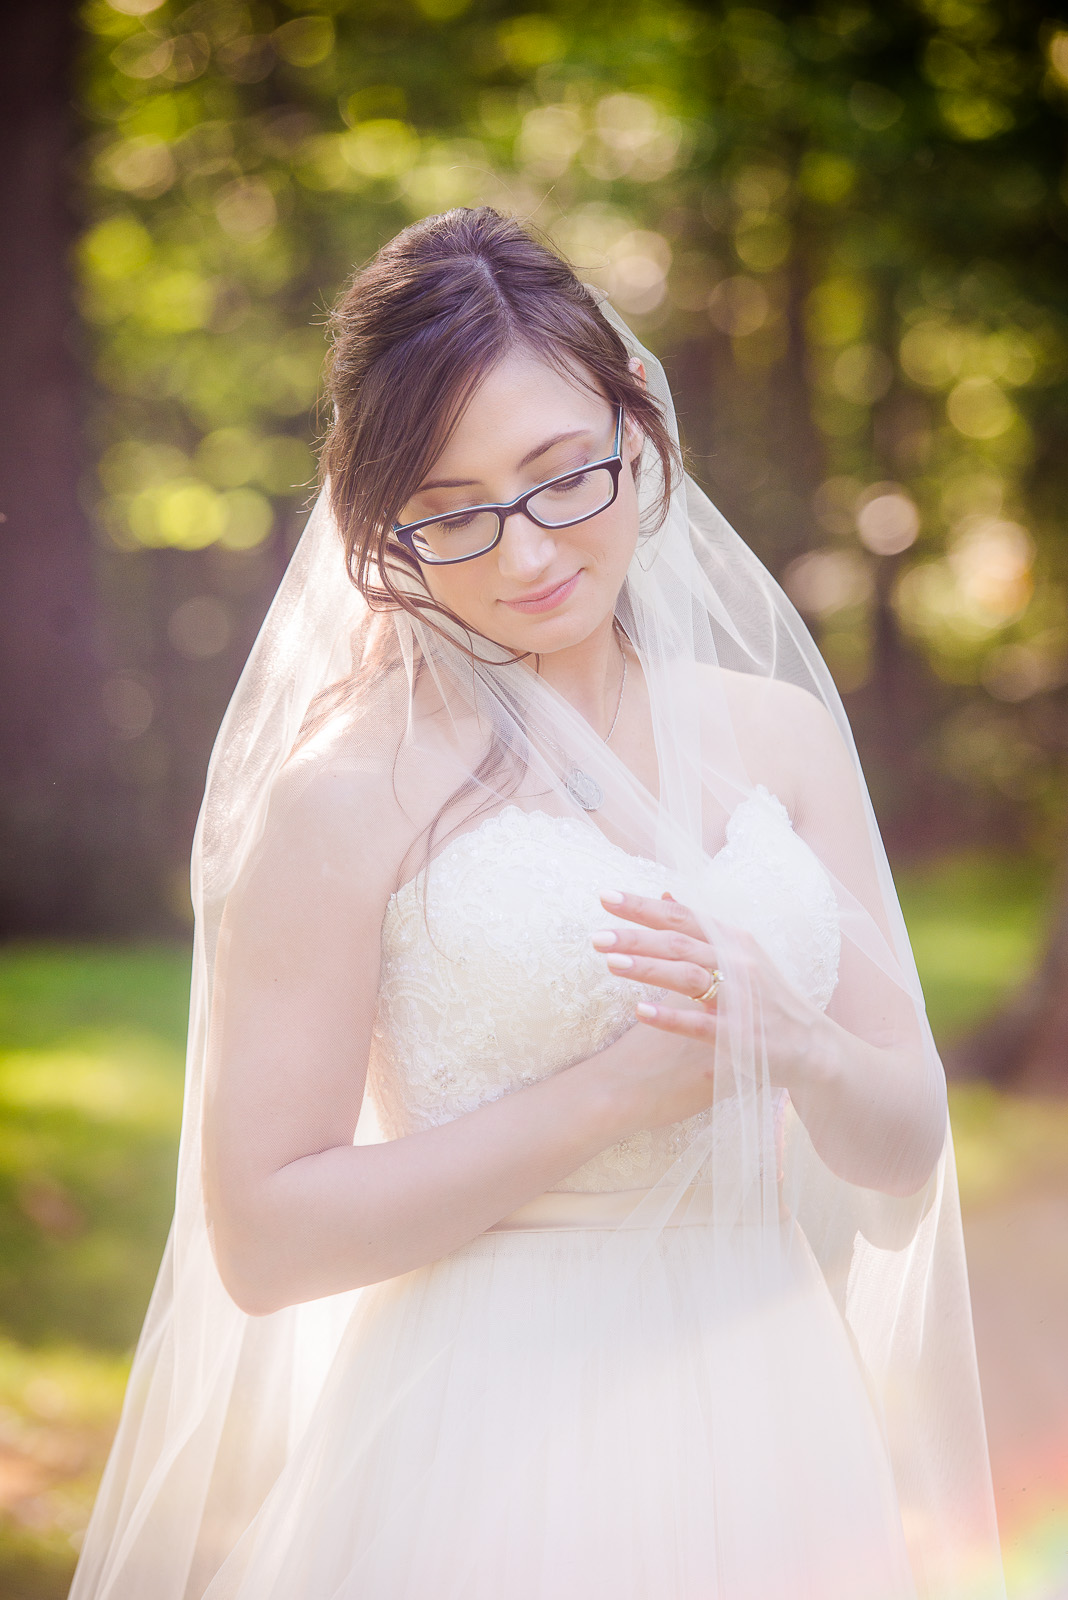 Eric_and_Christy_Photography_Blog_2018_Portraits-29